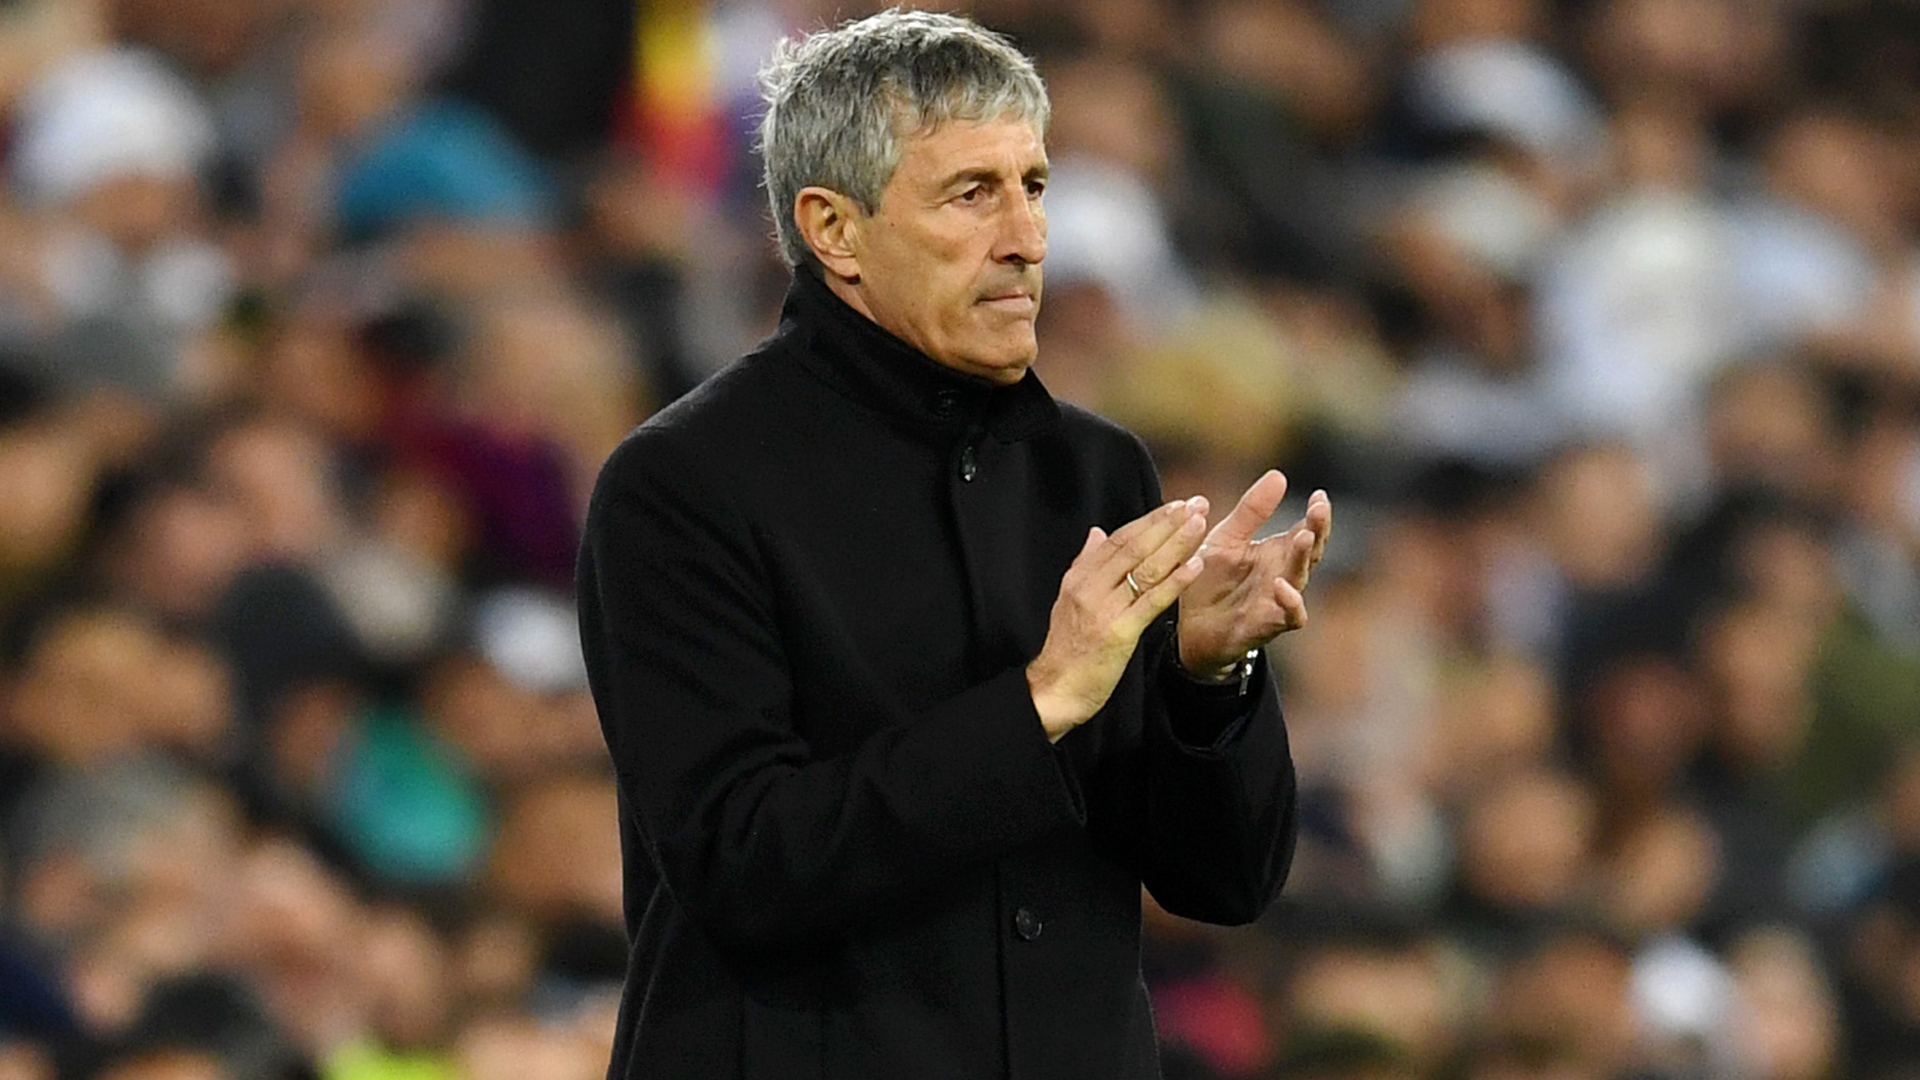 Setien unworried about Real Madrid as Barcelona continue chase